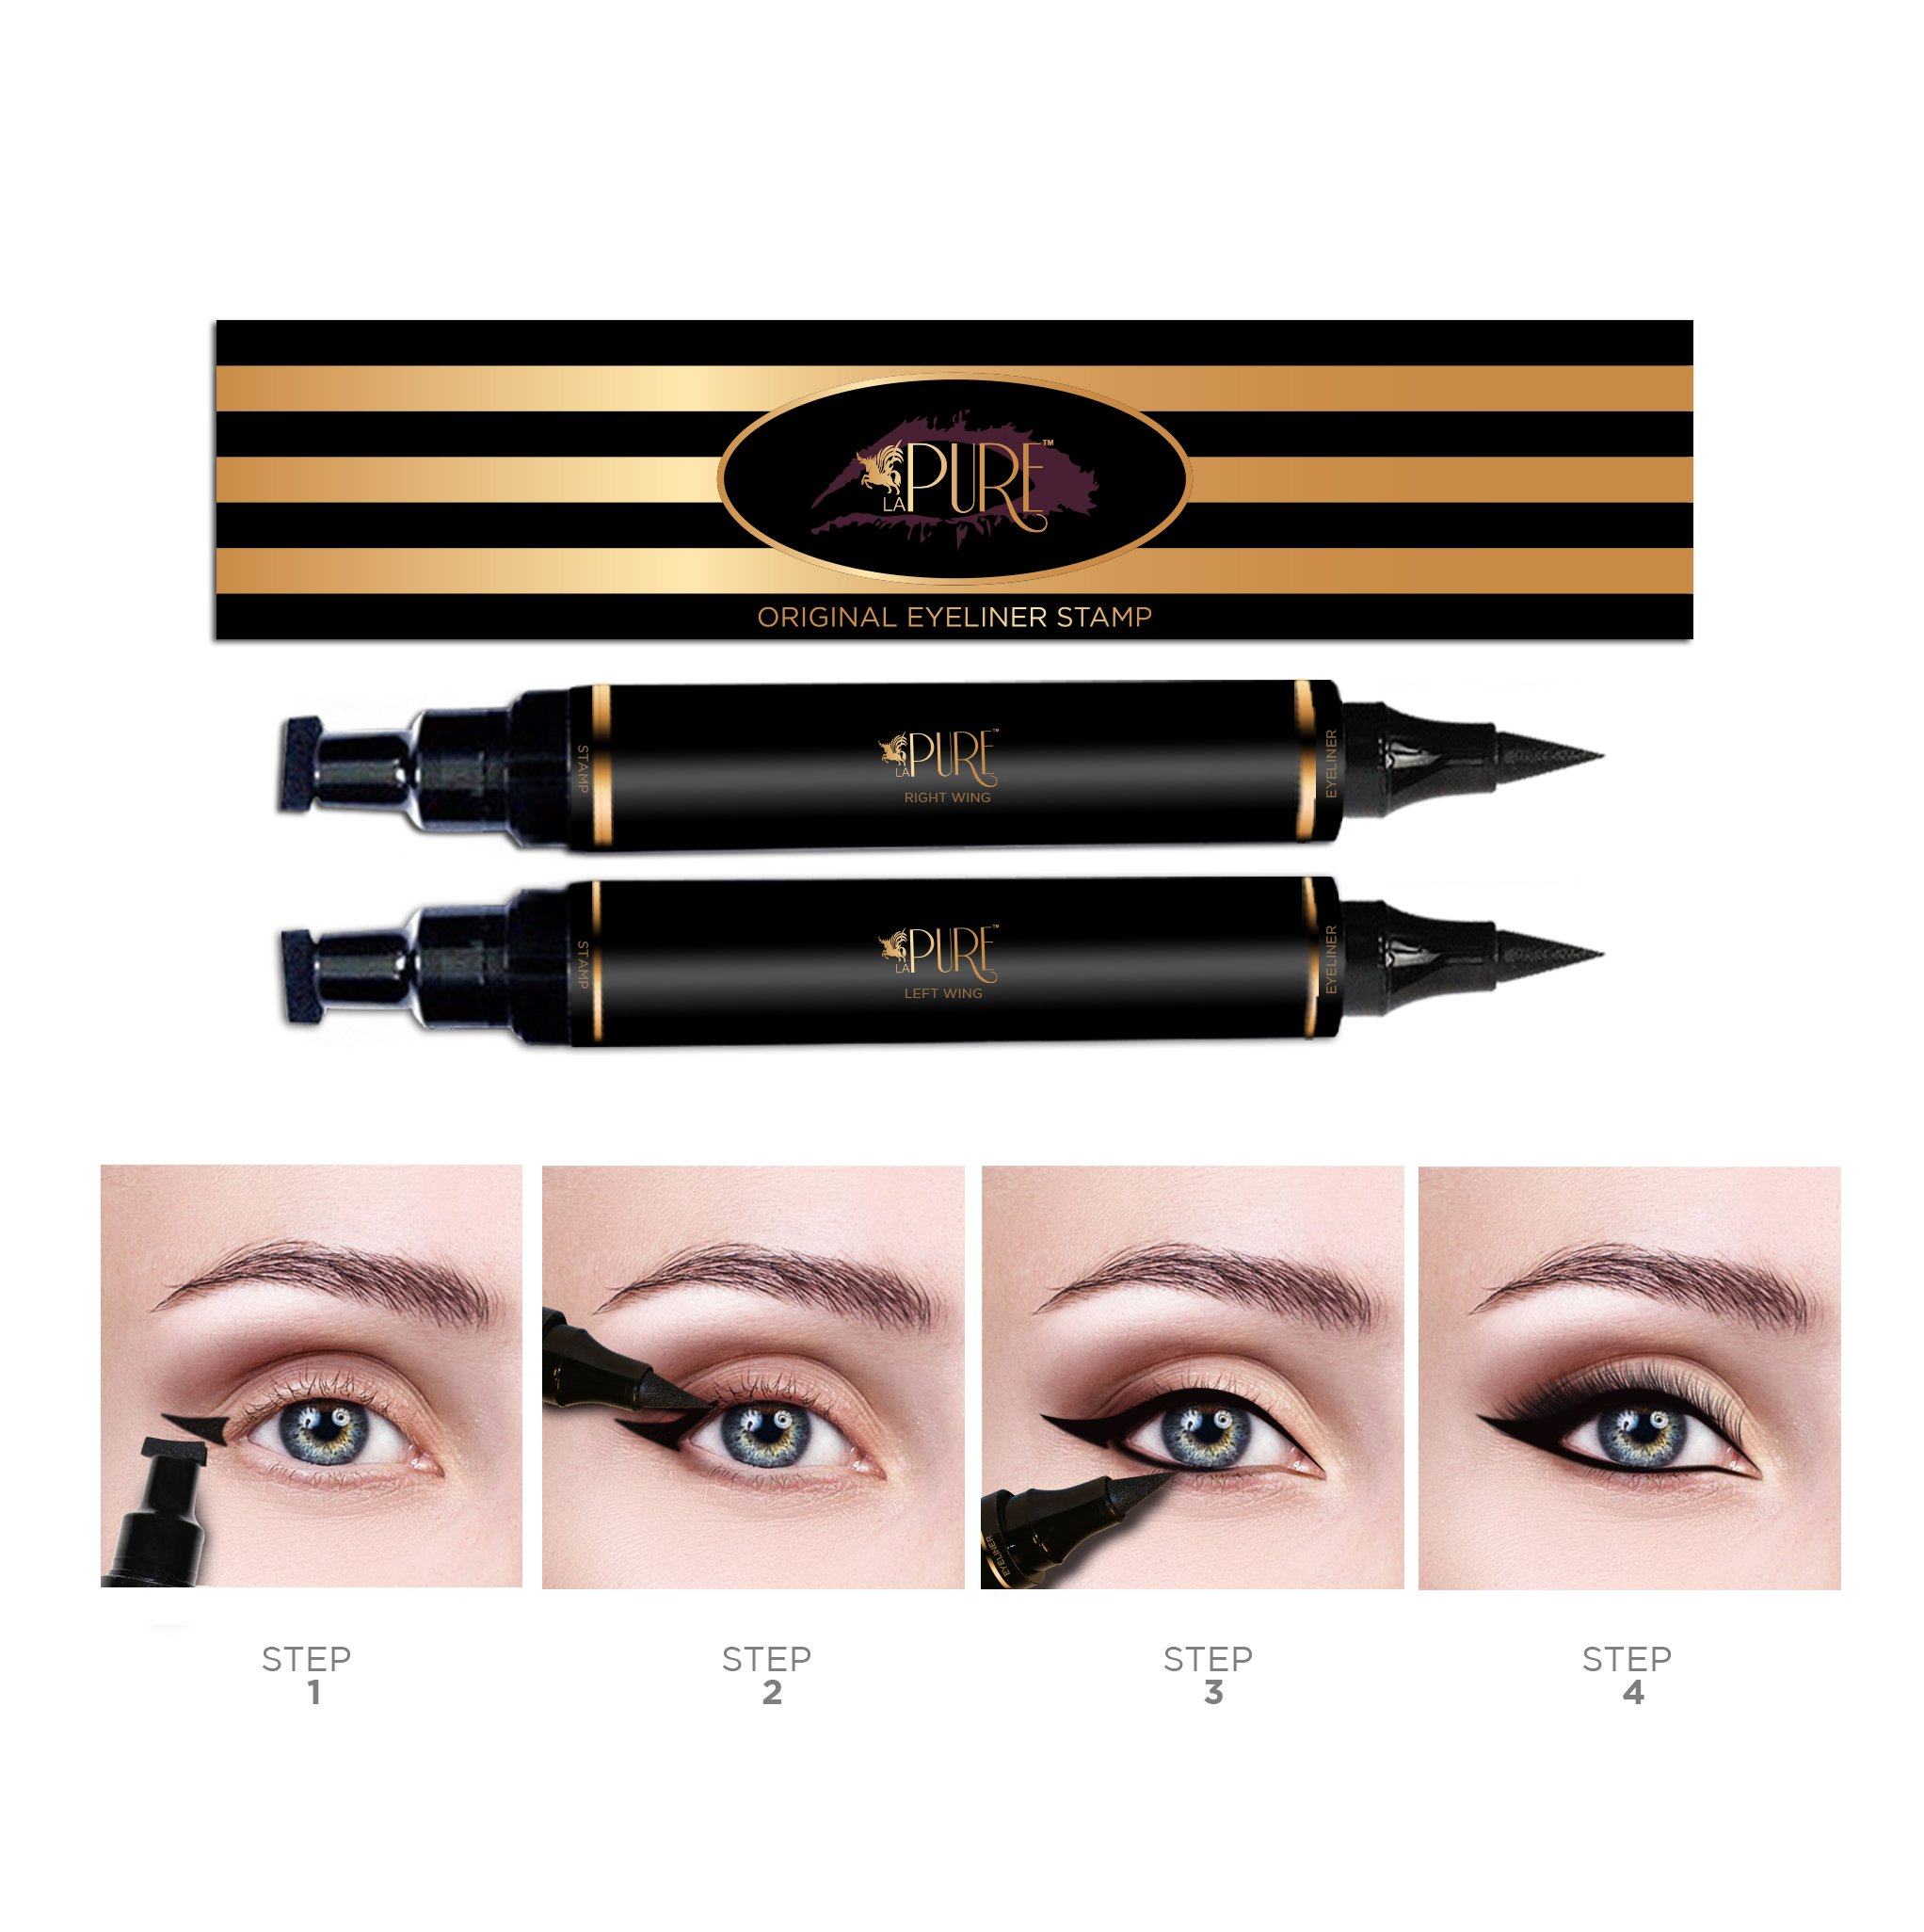 Original Eyeliner Stamp by LA PURE (2 Pens) - 2 double-sided pens, winged liquid eyeliner stamp & pencil, Vamp style wing, smudgeproof, waterproof, long-lasting, No Dripping (10mm Original) by LA PURE (Image #3)